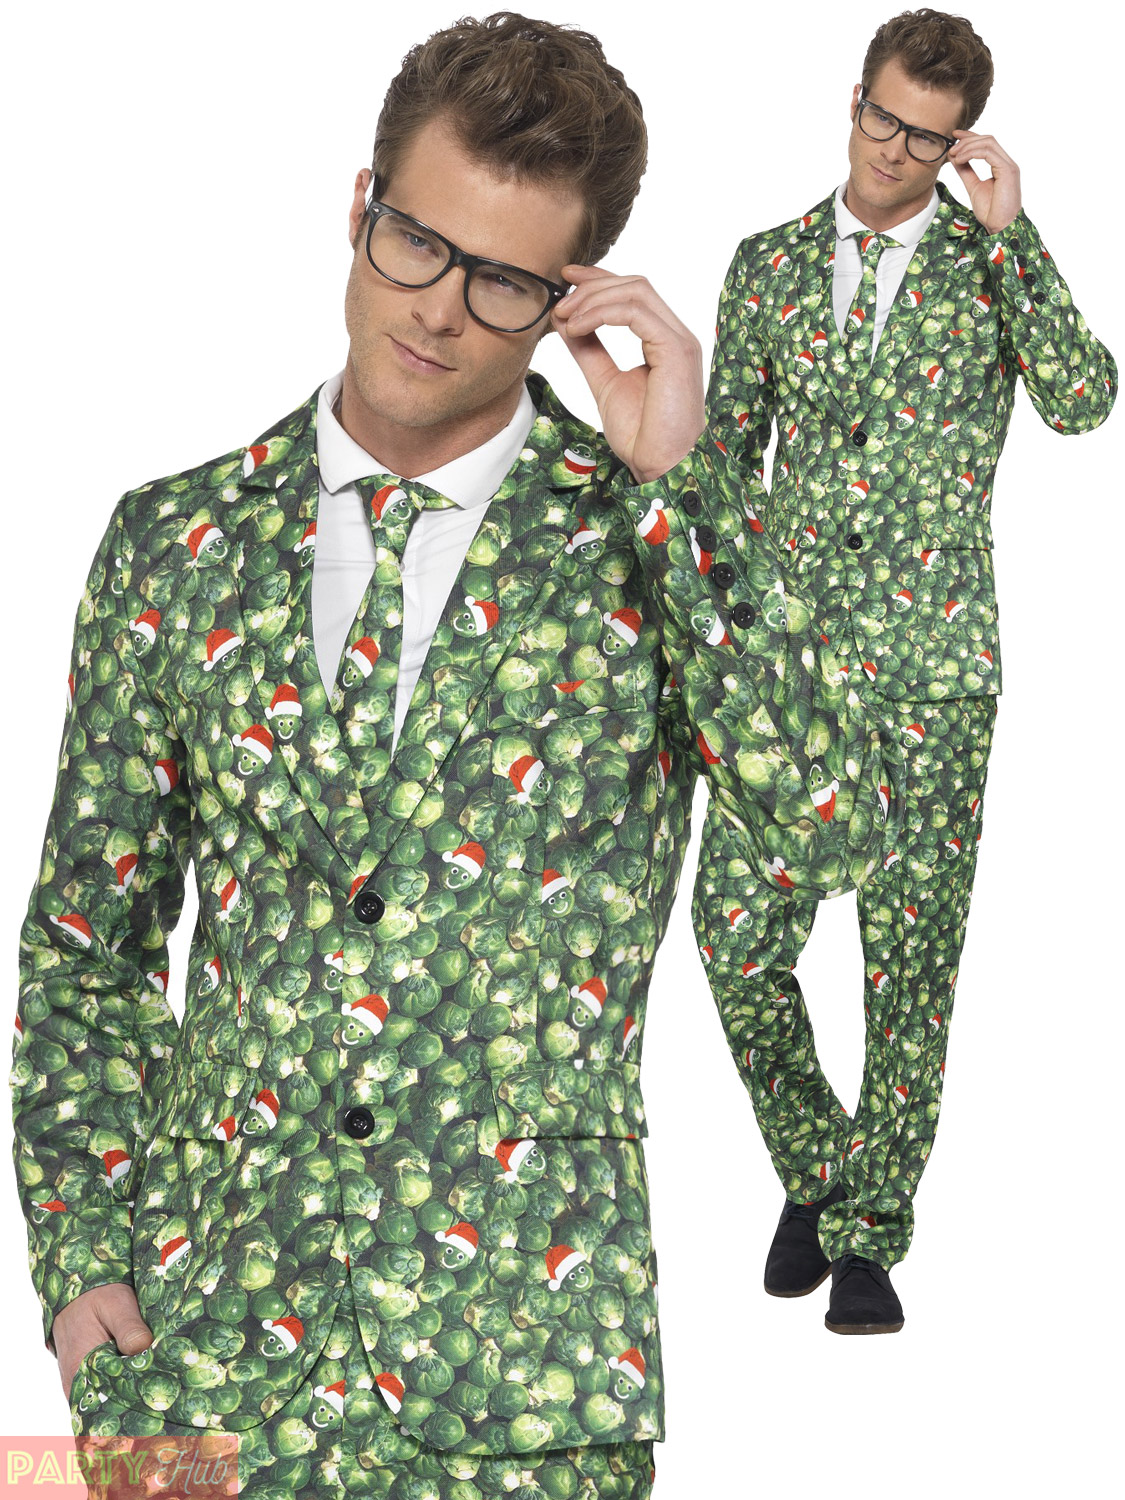 Mens Christmas Suit Brussel Sprout Pattern Funny Festive